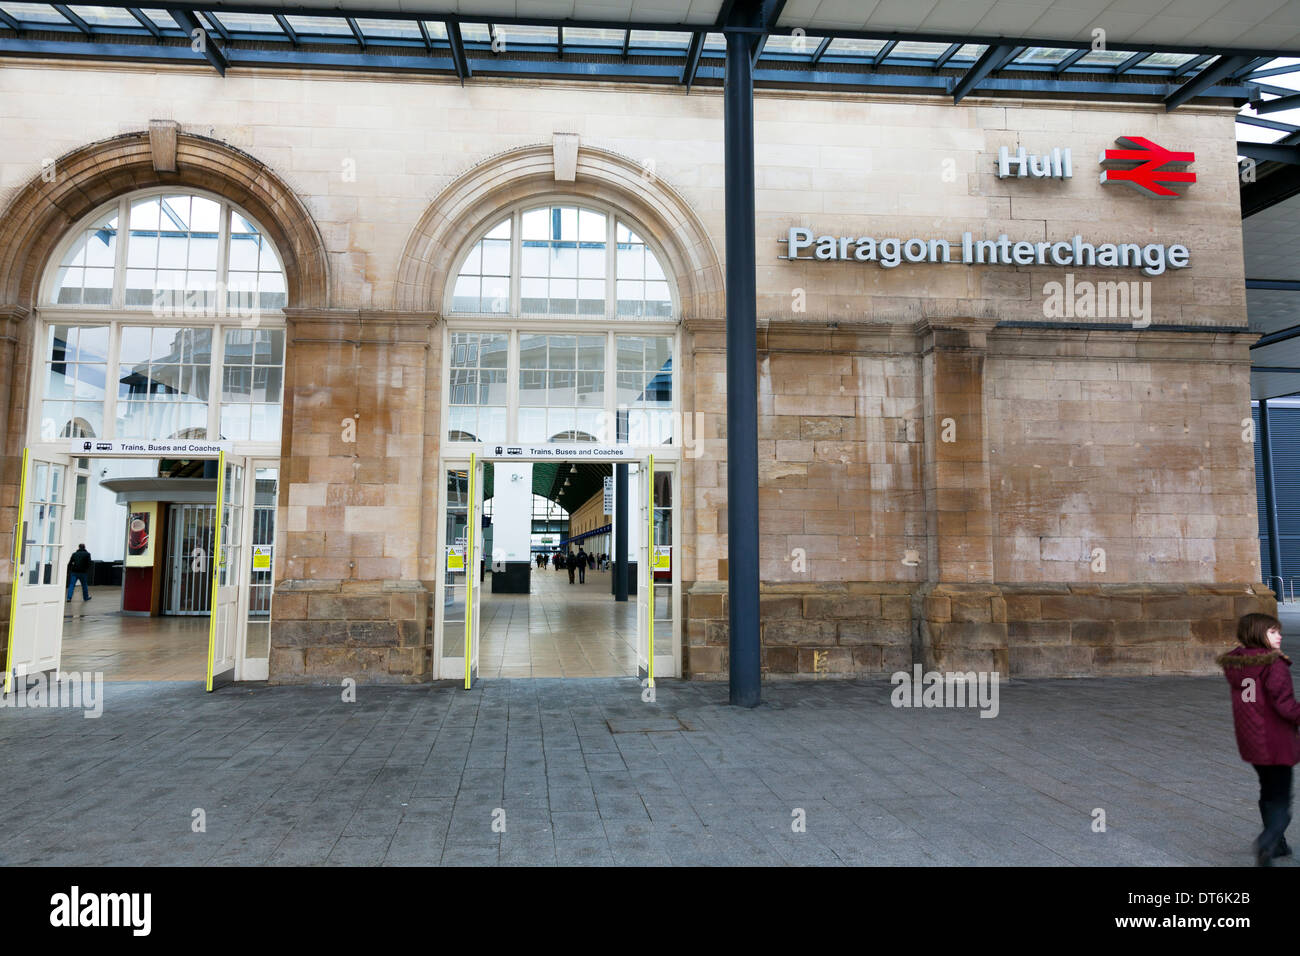 Paragon Interchange intercity Kingston upon Hull City East Riding Paragon Interchange, Yorkshire, UK, England GB - Stock Image